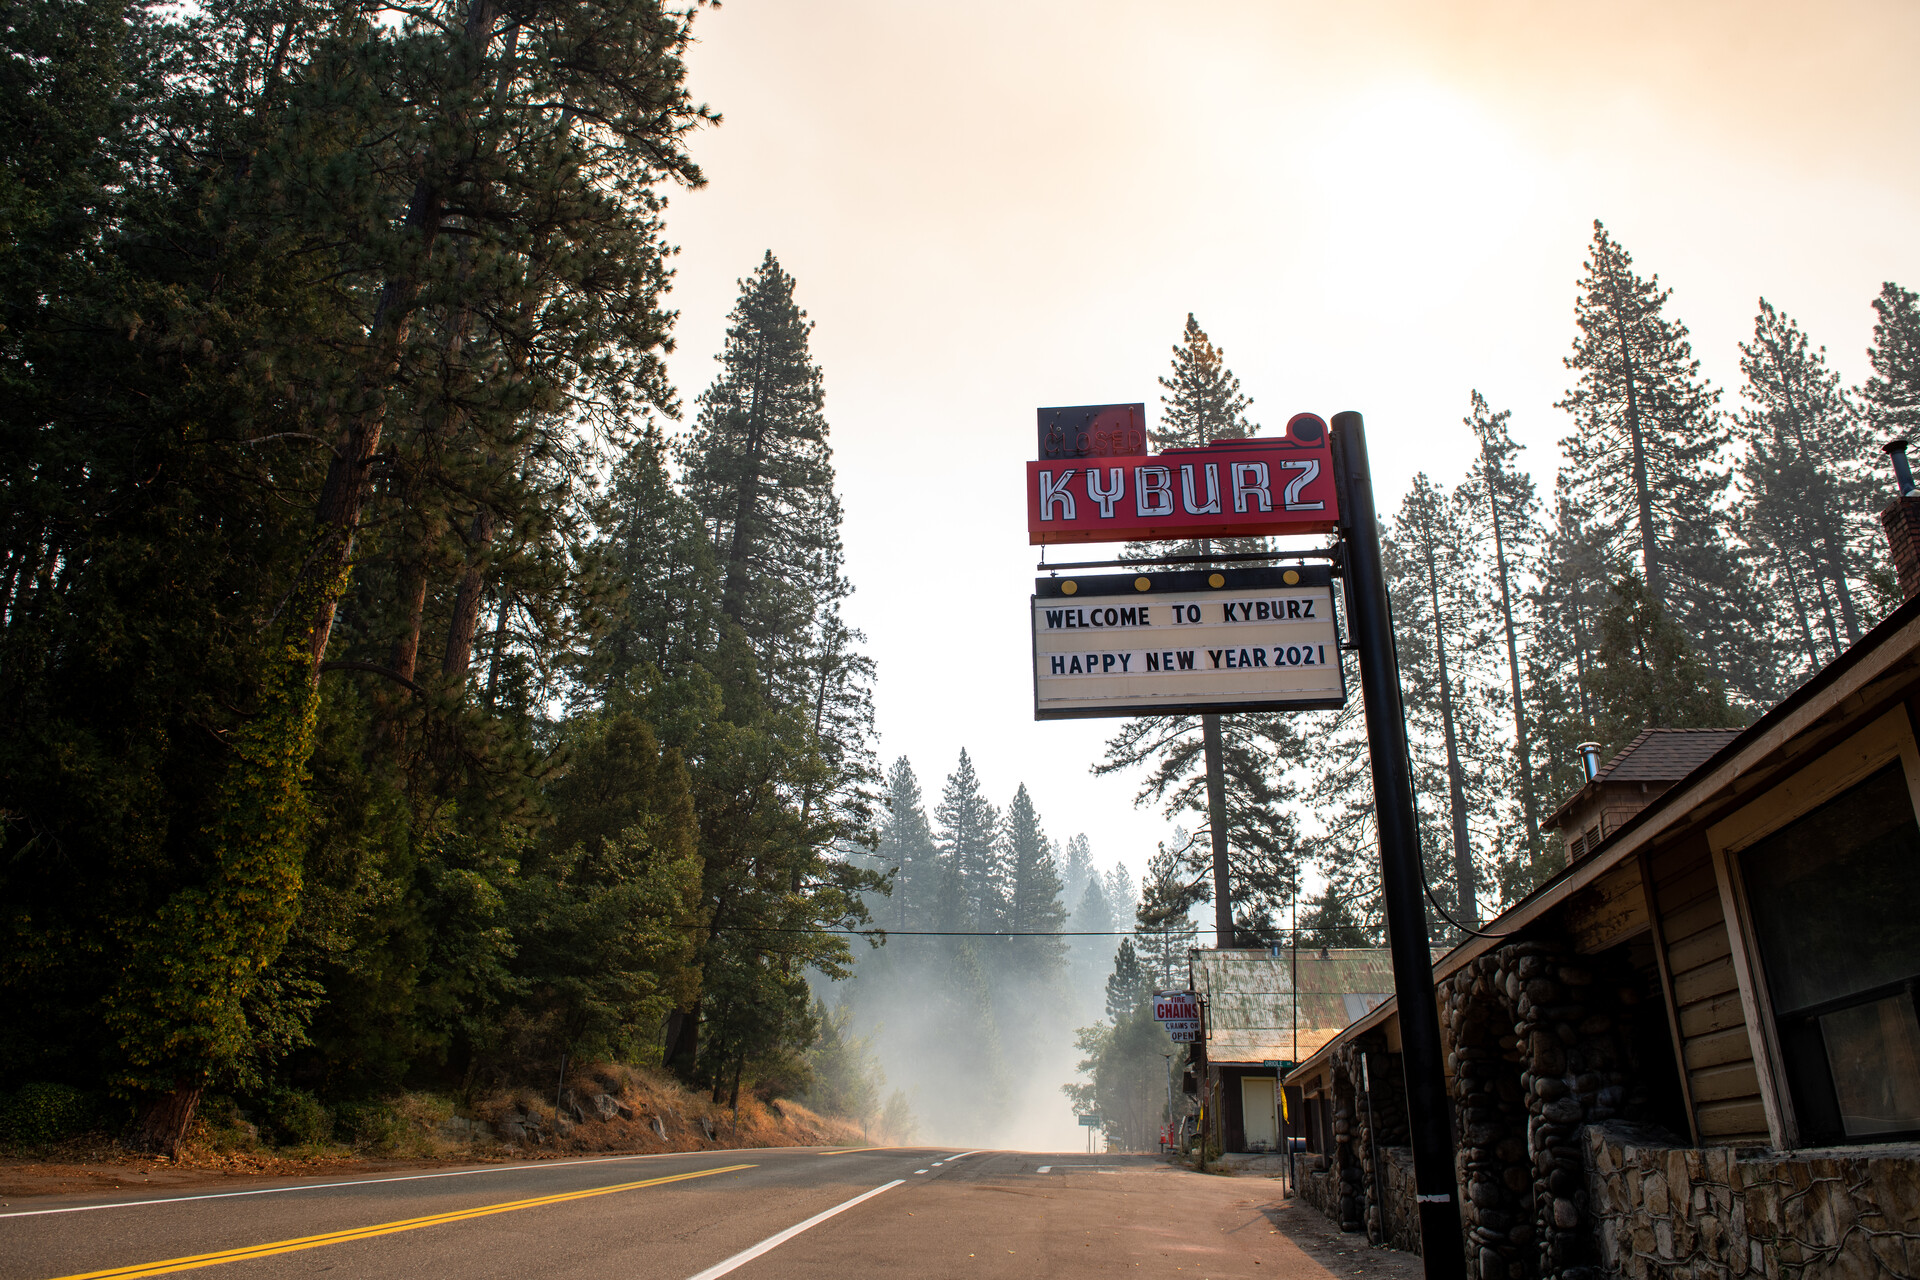 A red and white sign on a tall pole along a two-lane road, surrounded by tall fir trees, with smoke haze in the distance.